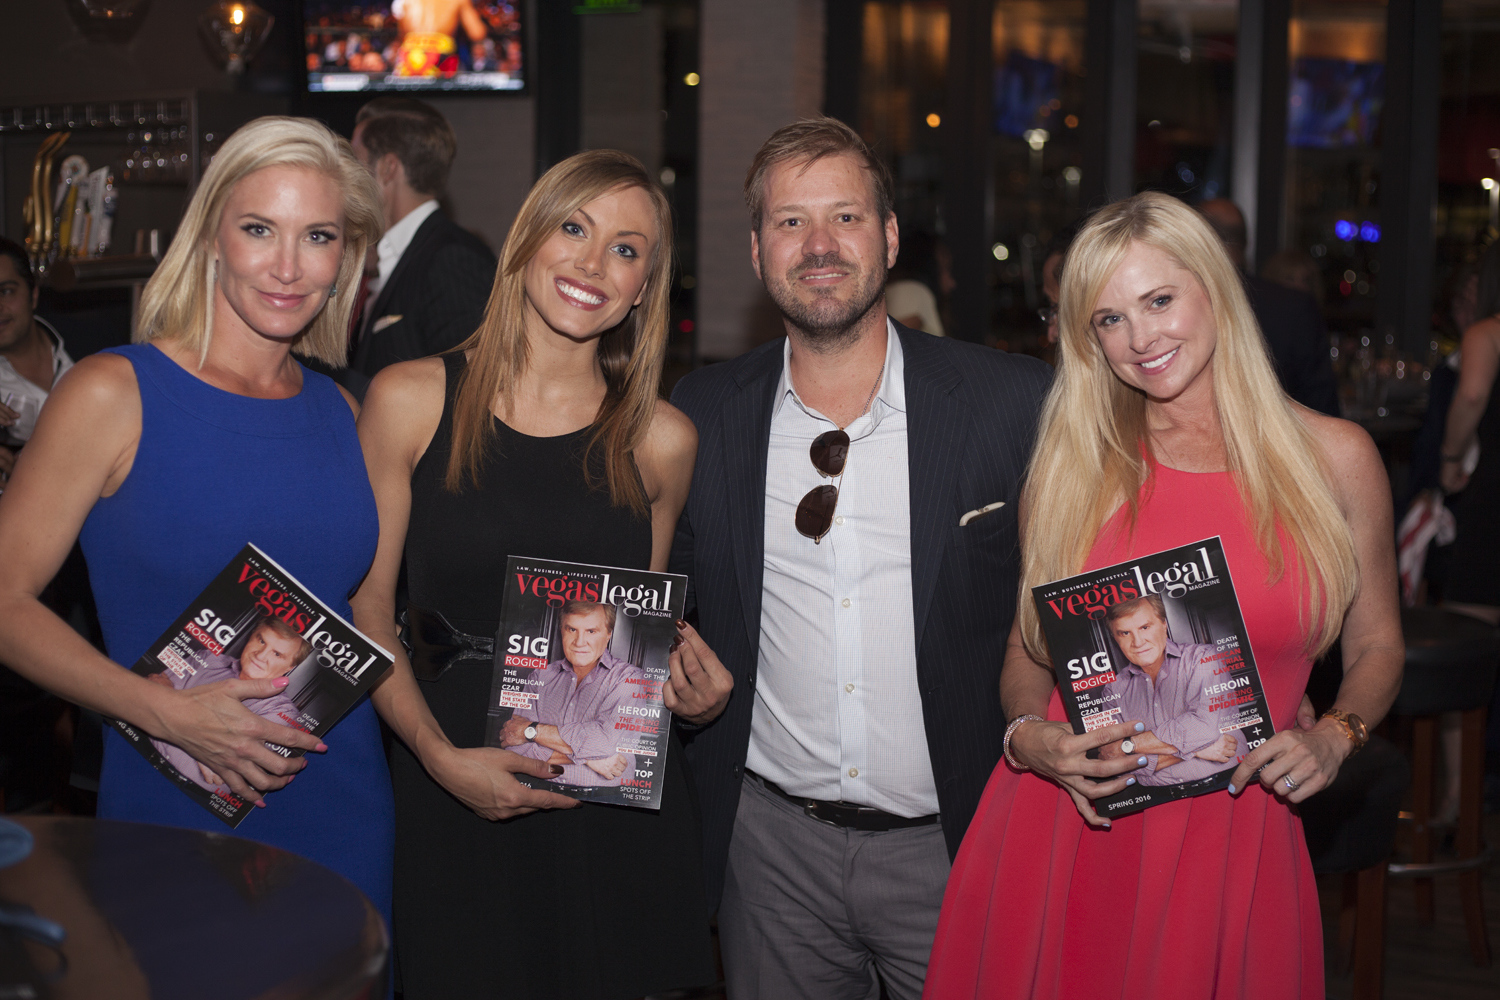 Vegas Legal Magazine